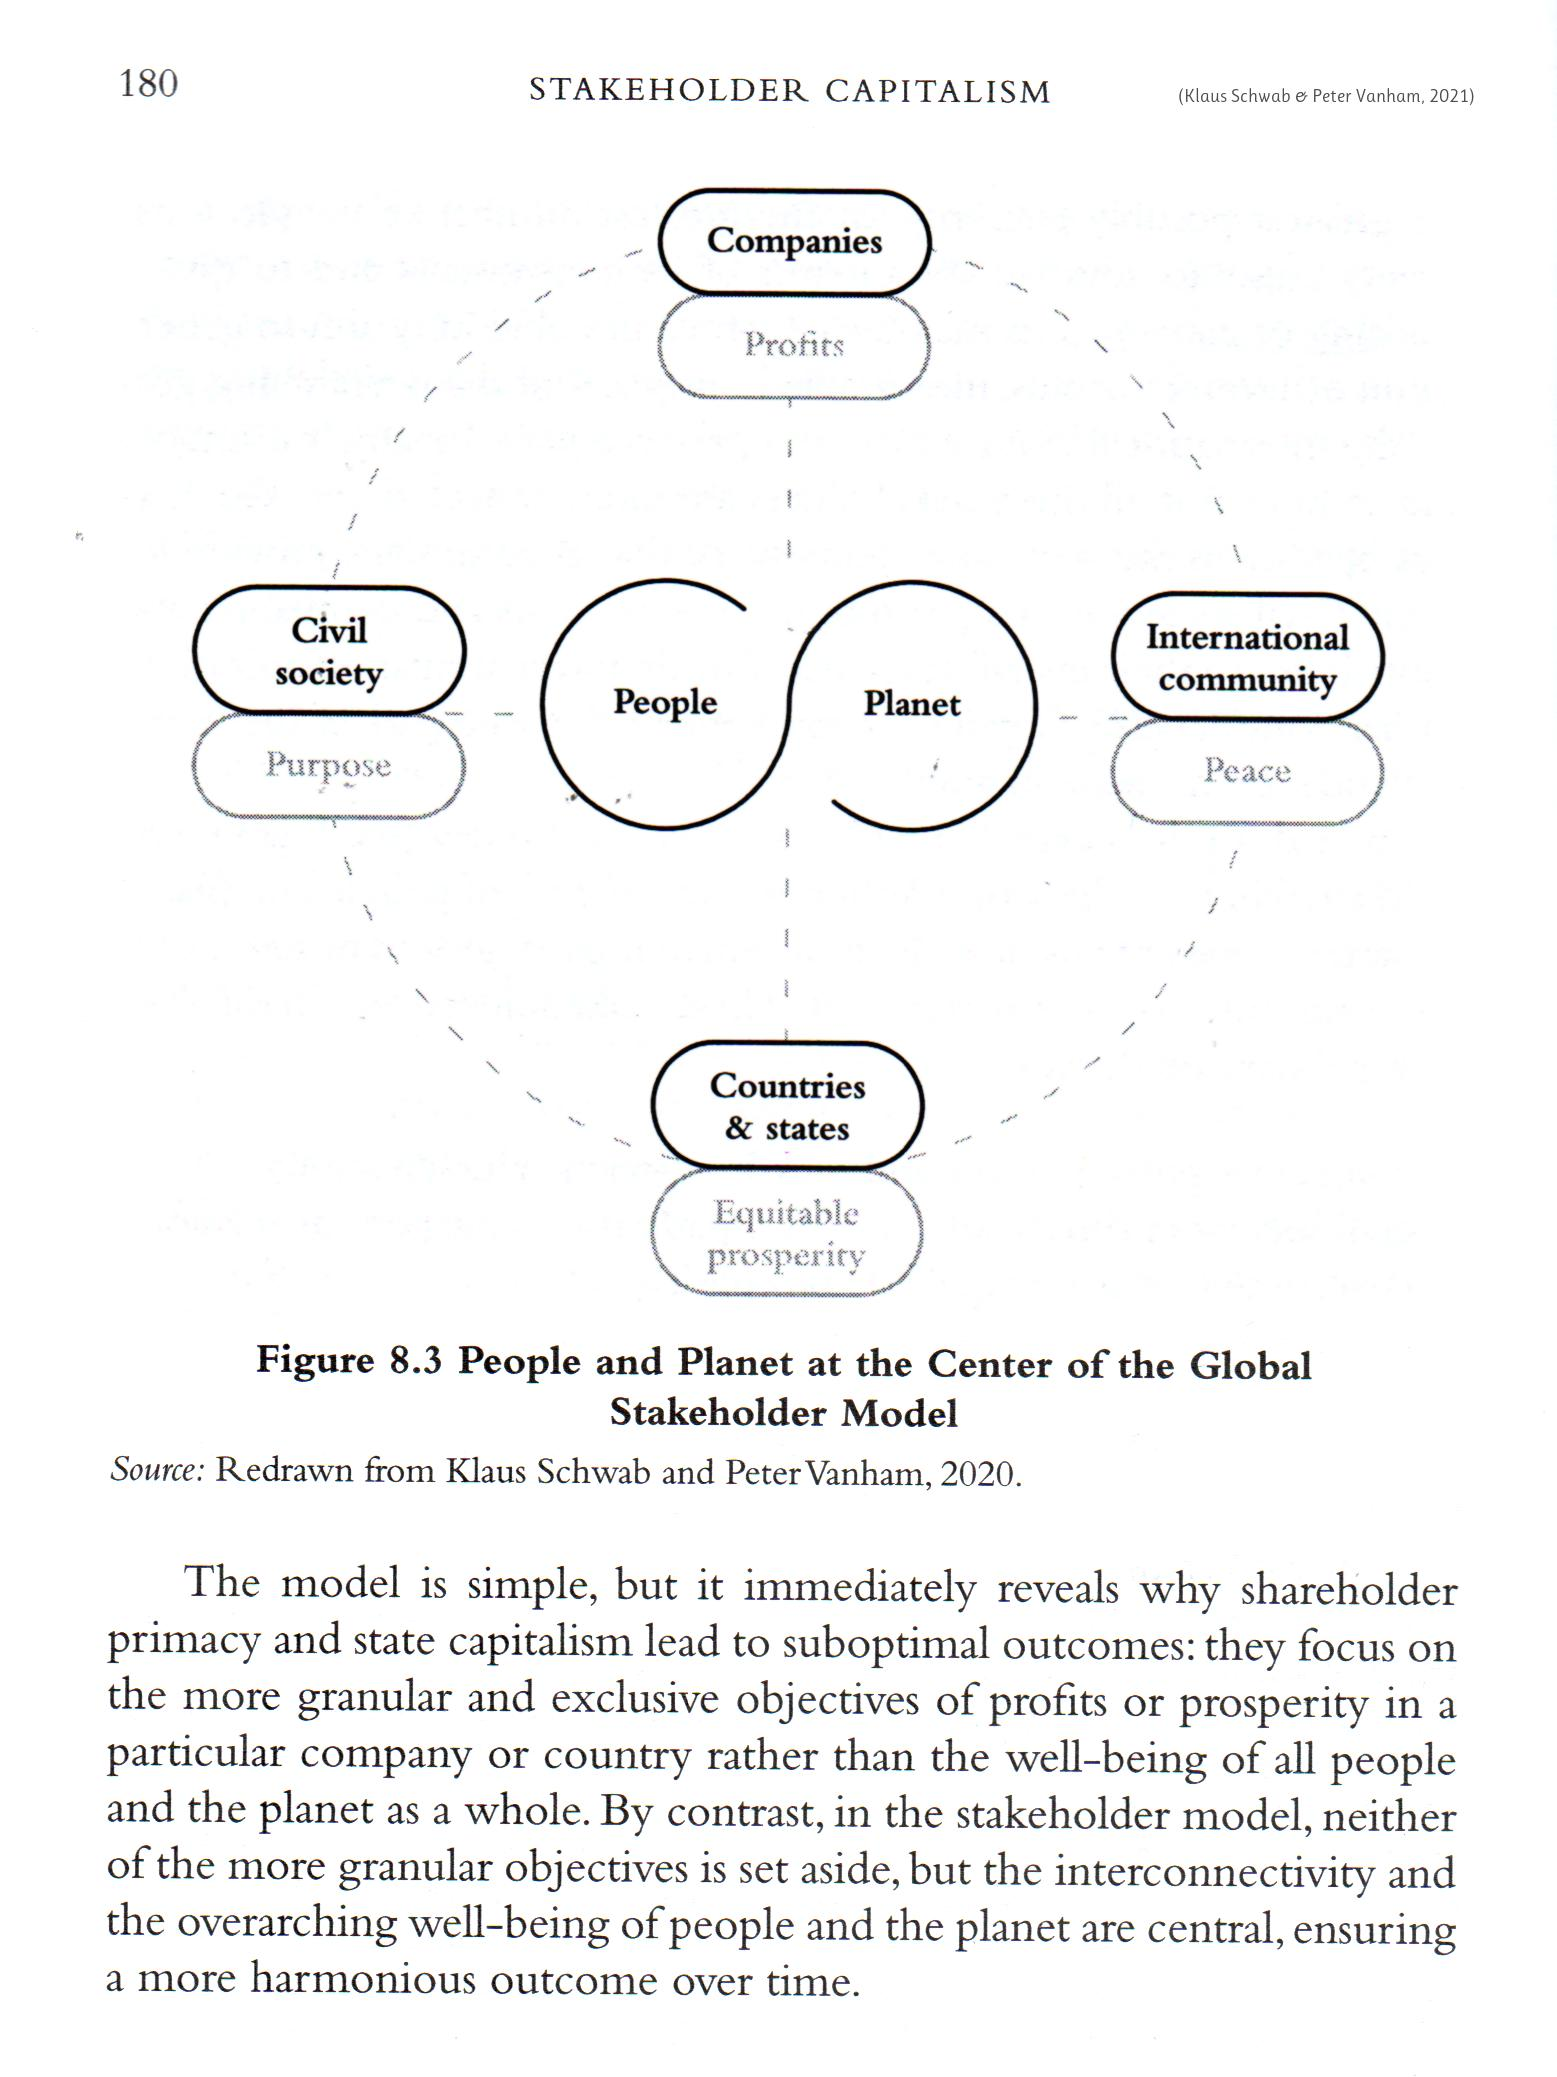 core concept model of stakeholder capitalism